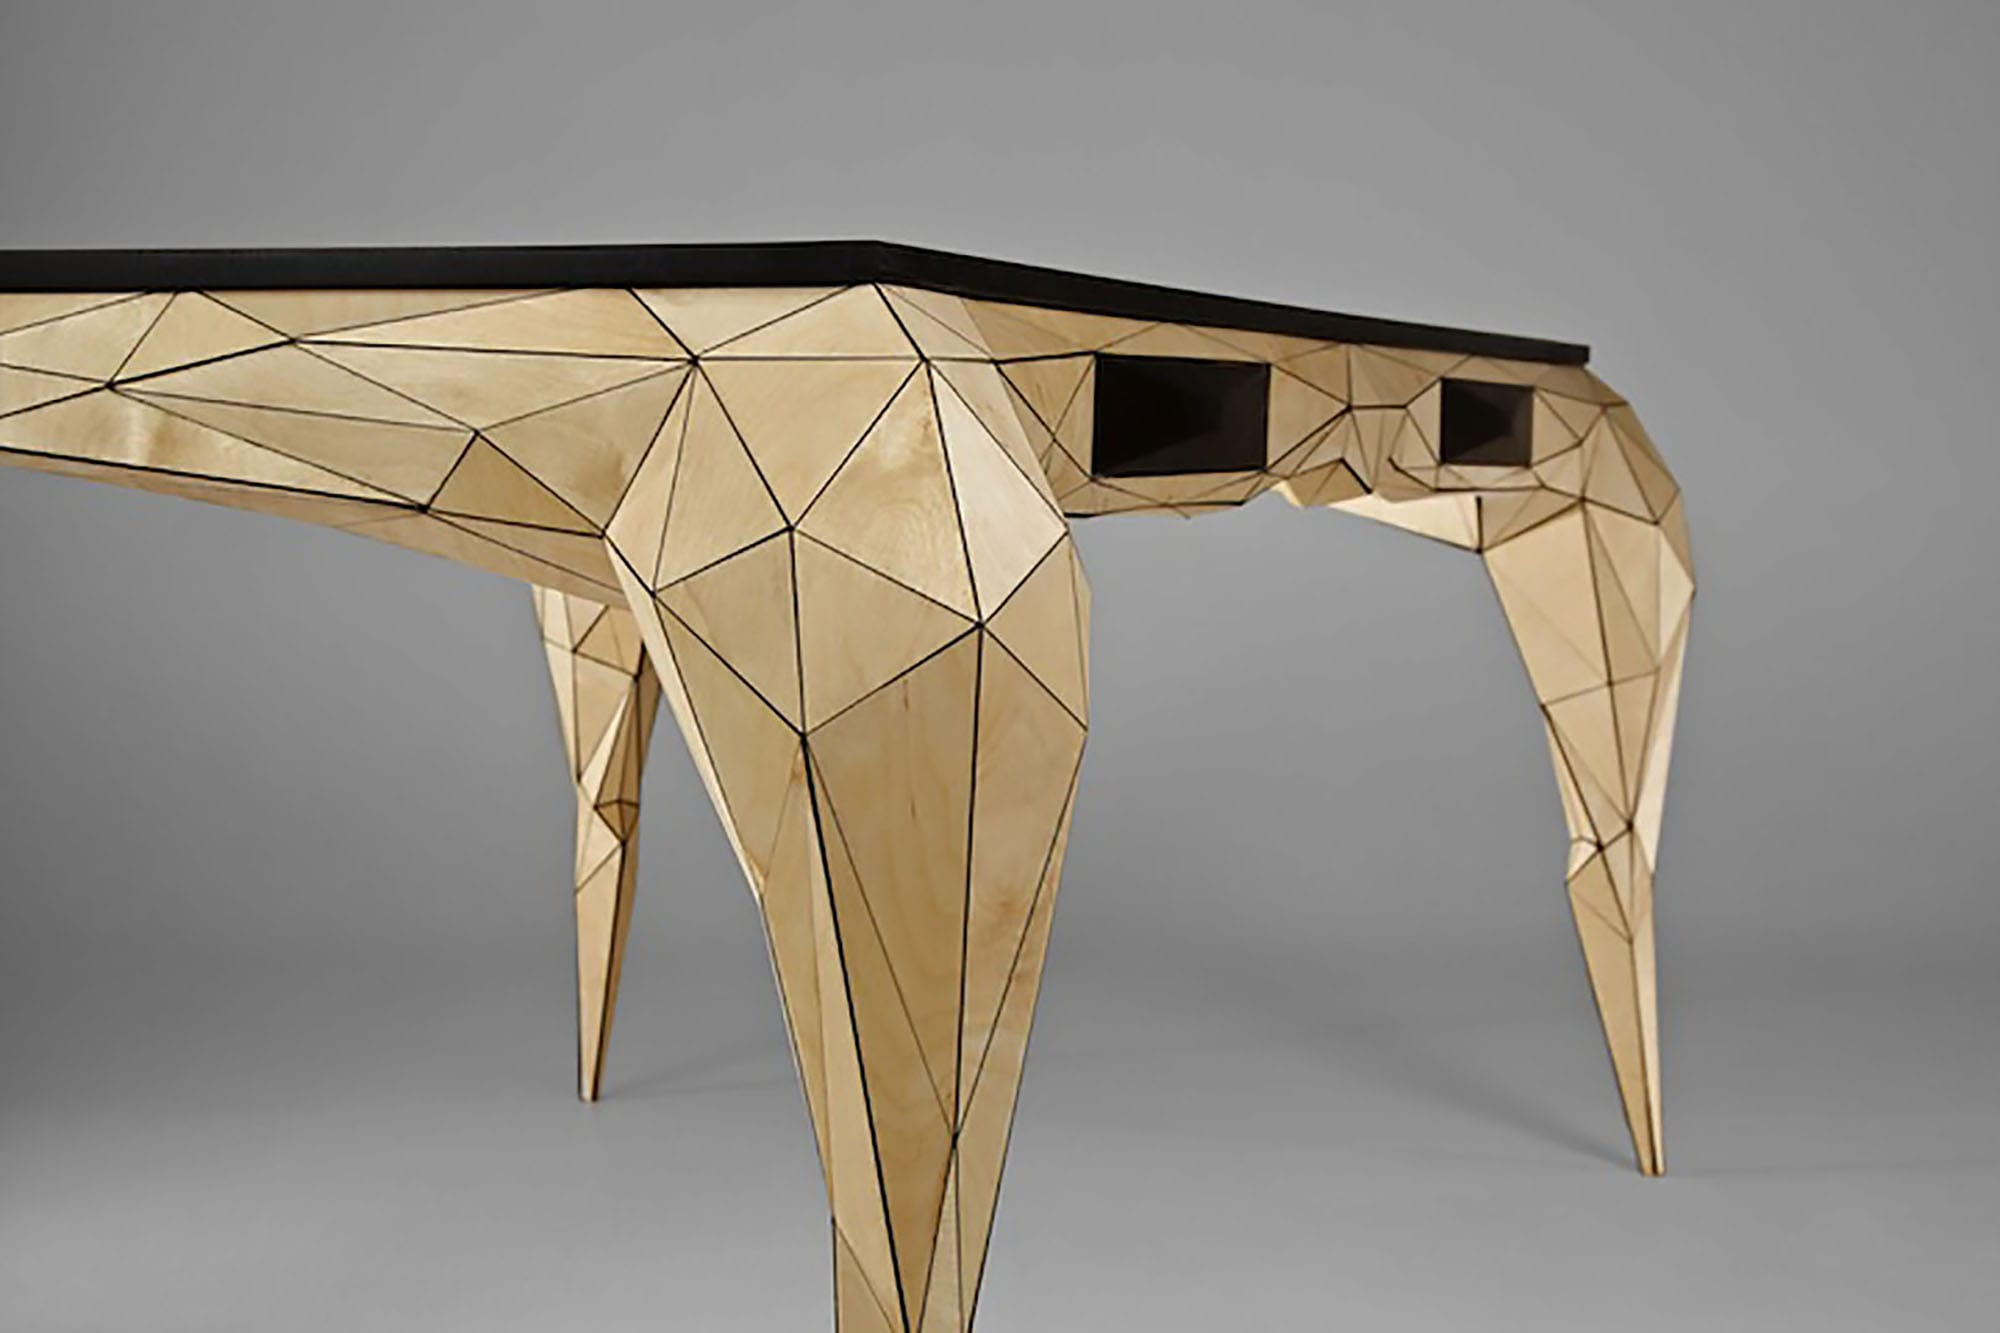 jasser studio - skin collection animal design furniture geometry desk wood drawer